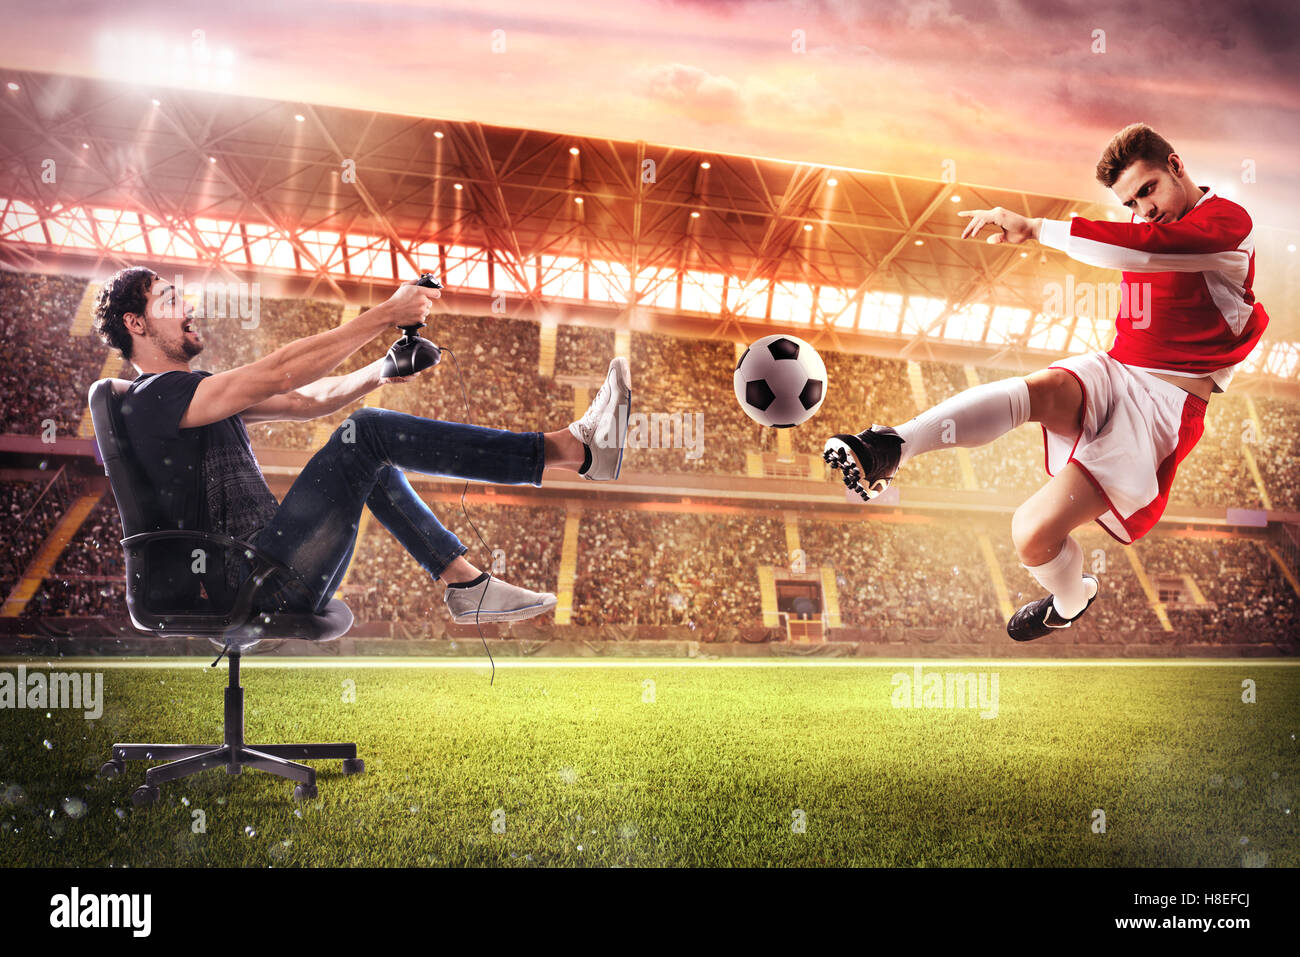 Realistic soccer video game - Stock Image